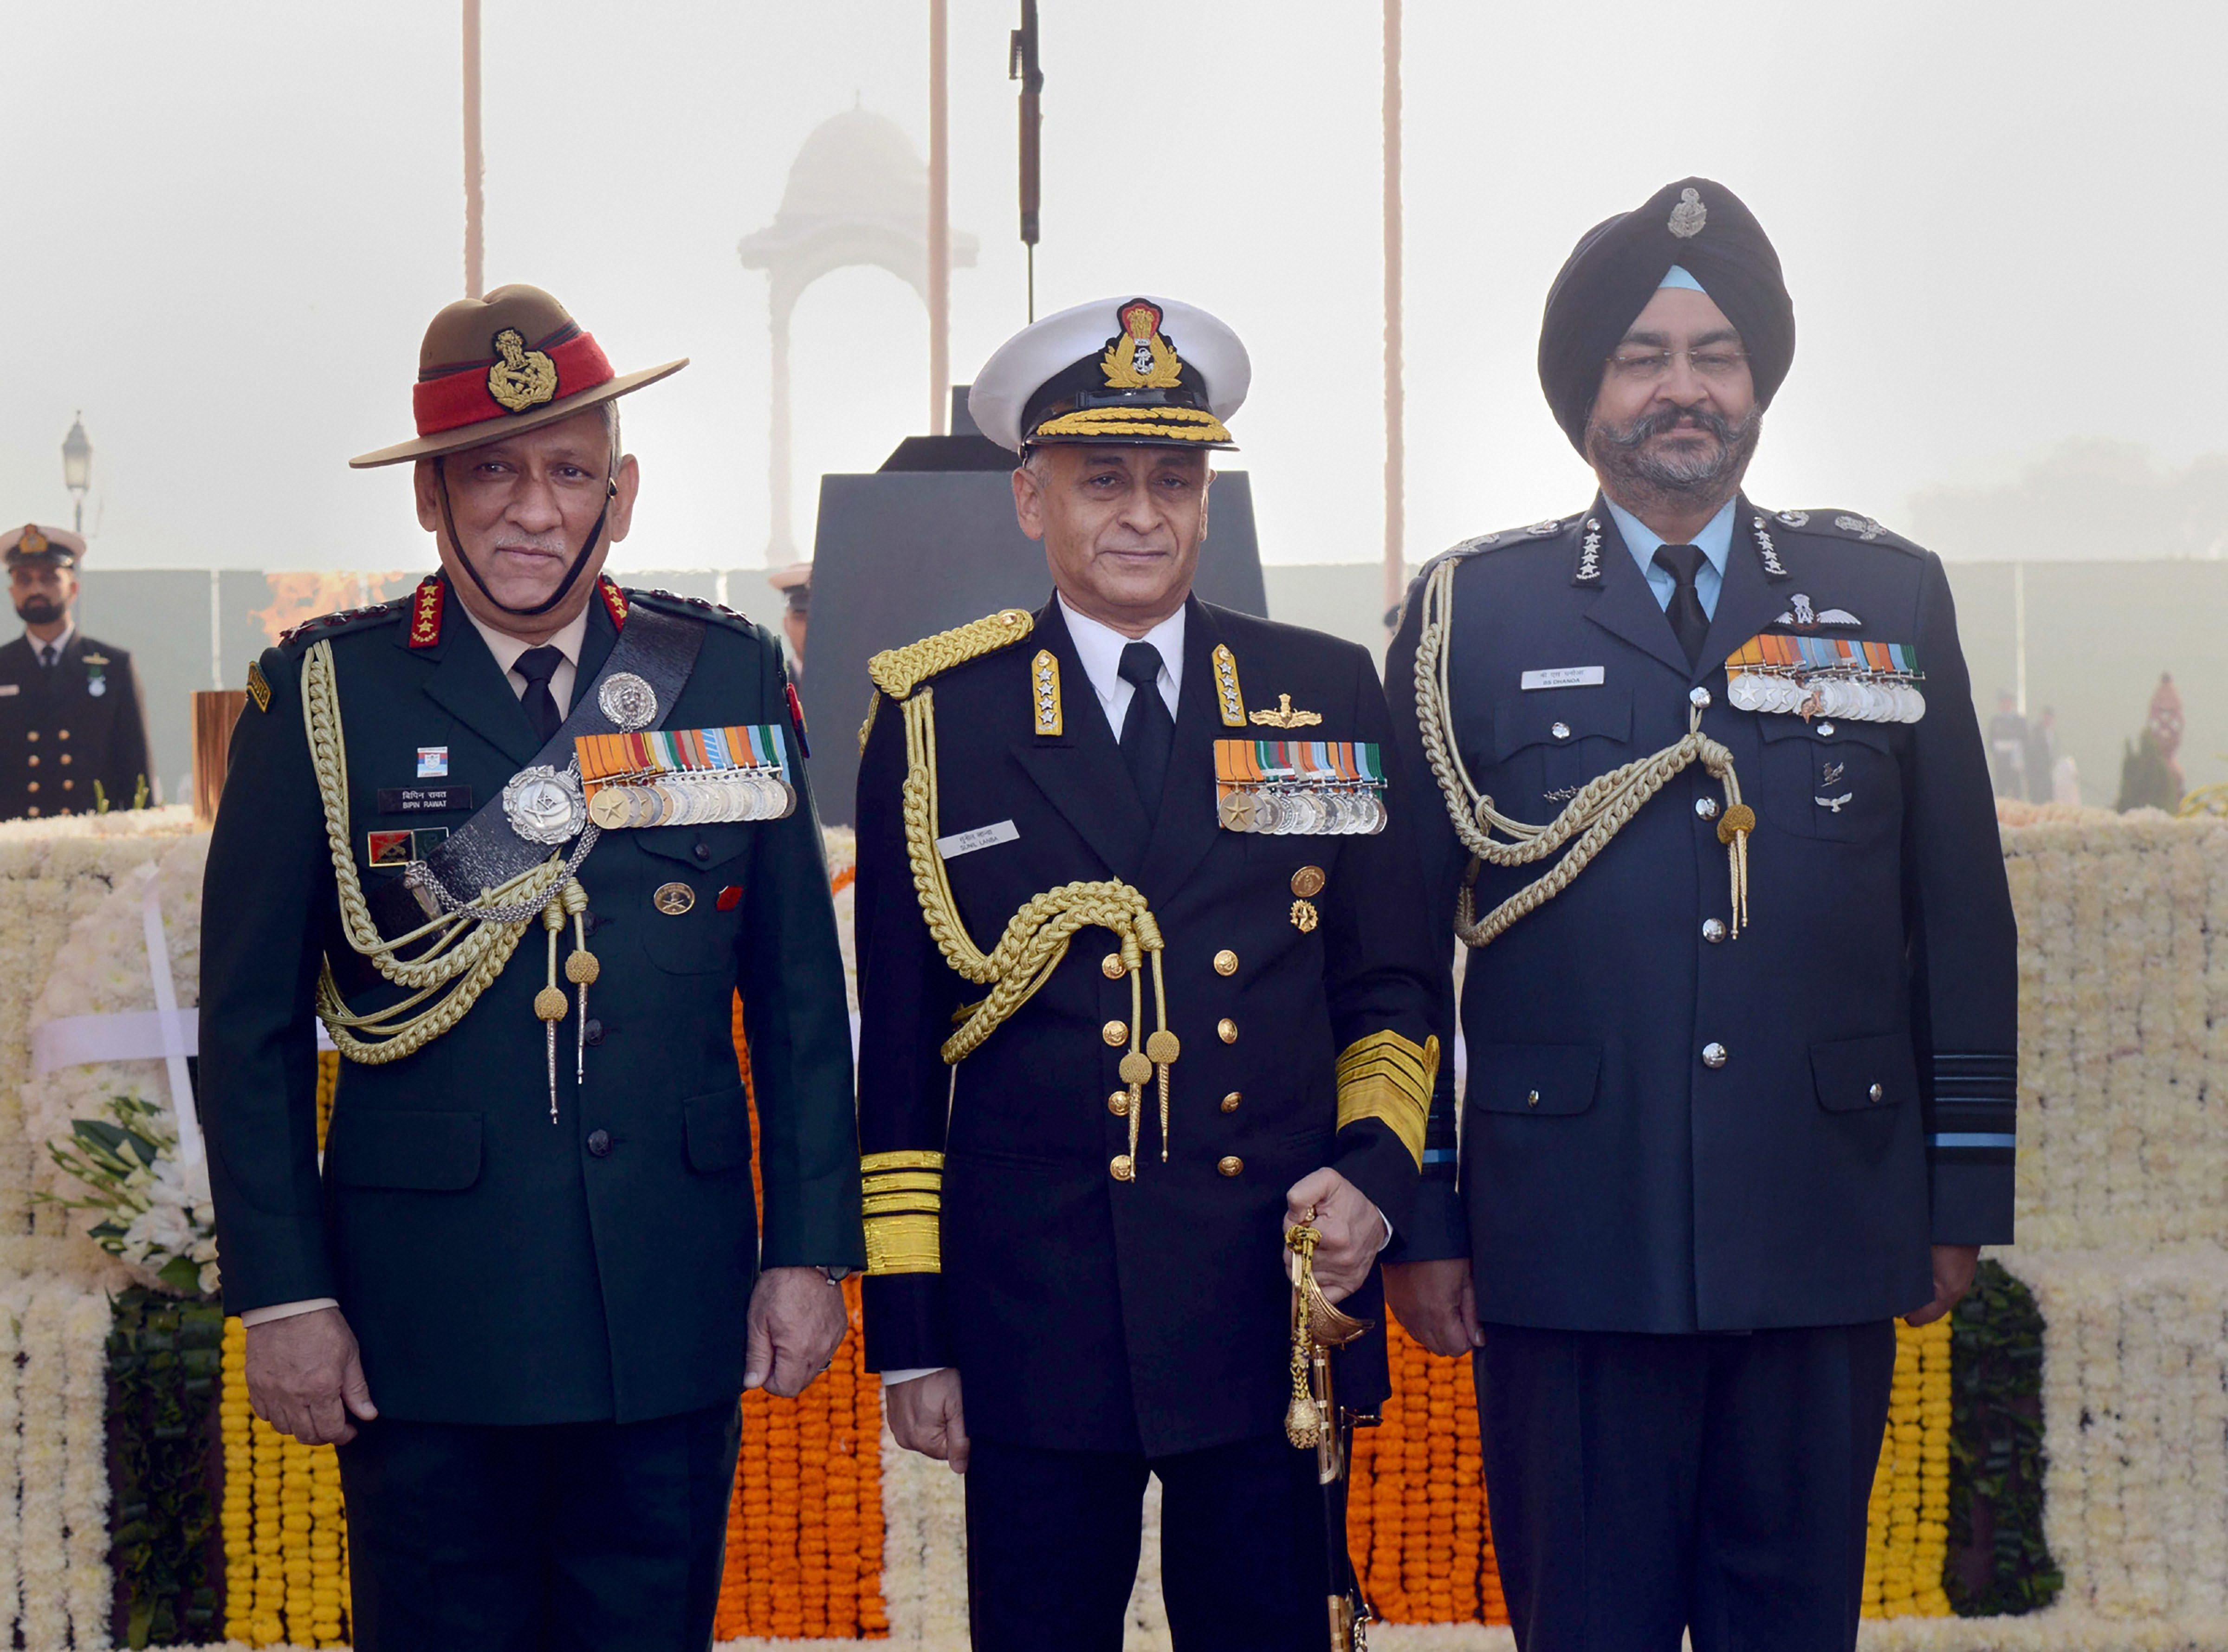 Chief of Army Staff General Bipin Rawat, Chief of Naval Staff Admiral Sunil Lanba and Chief of Air Staff Air Chief Marshal BS Dhanoa on the occasion of Navy Day at Amar Jawan Jyoti, India Gate, in New Delhi - PTI